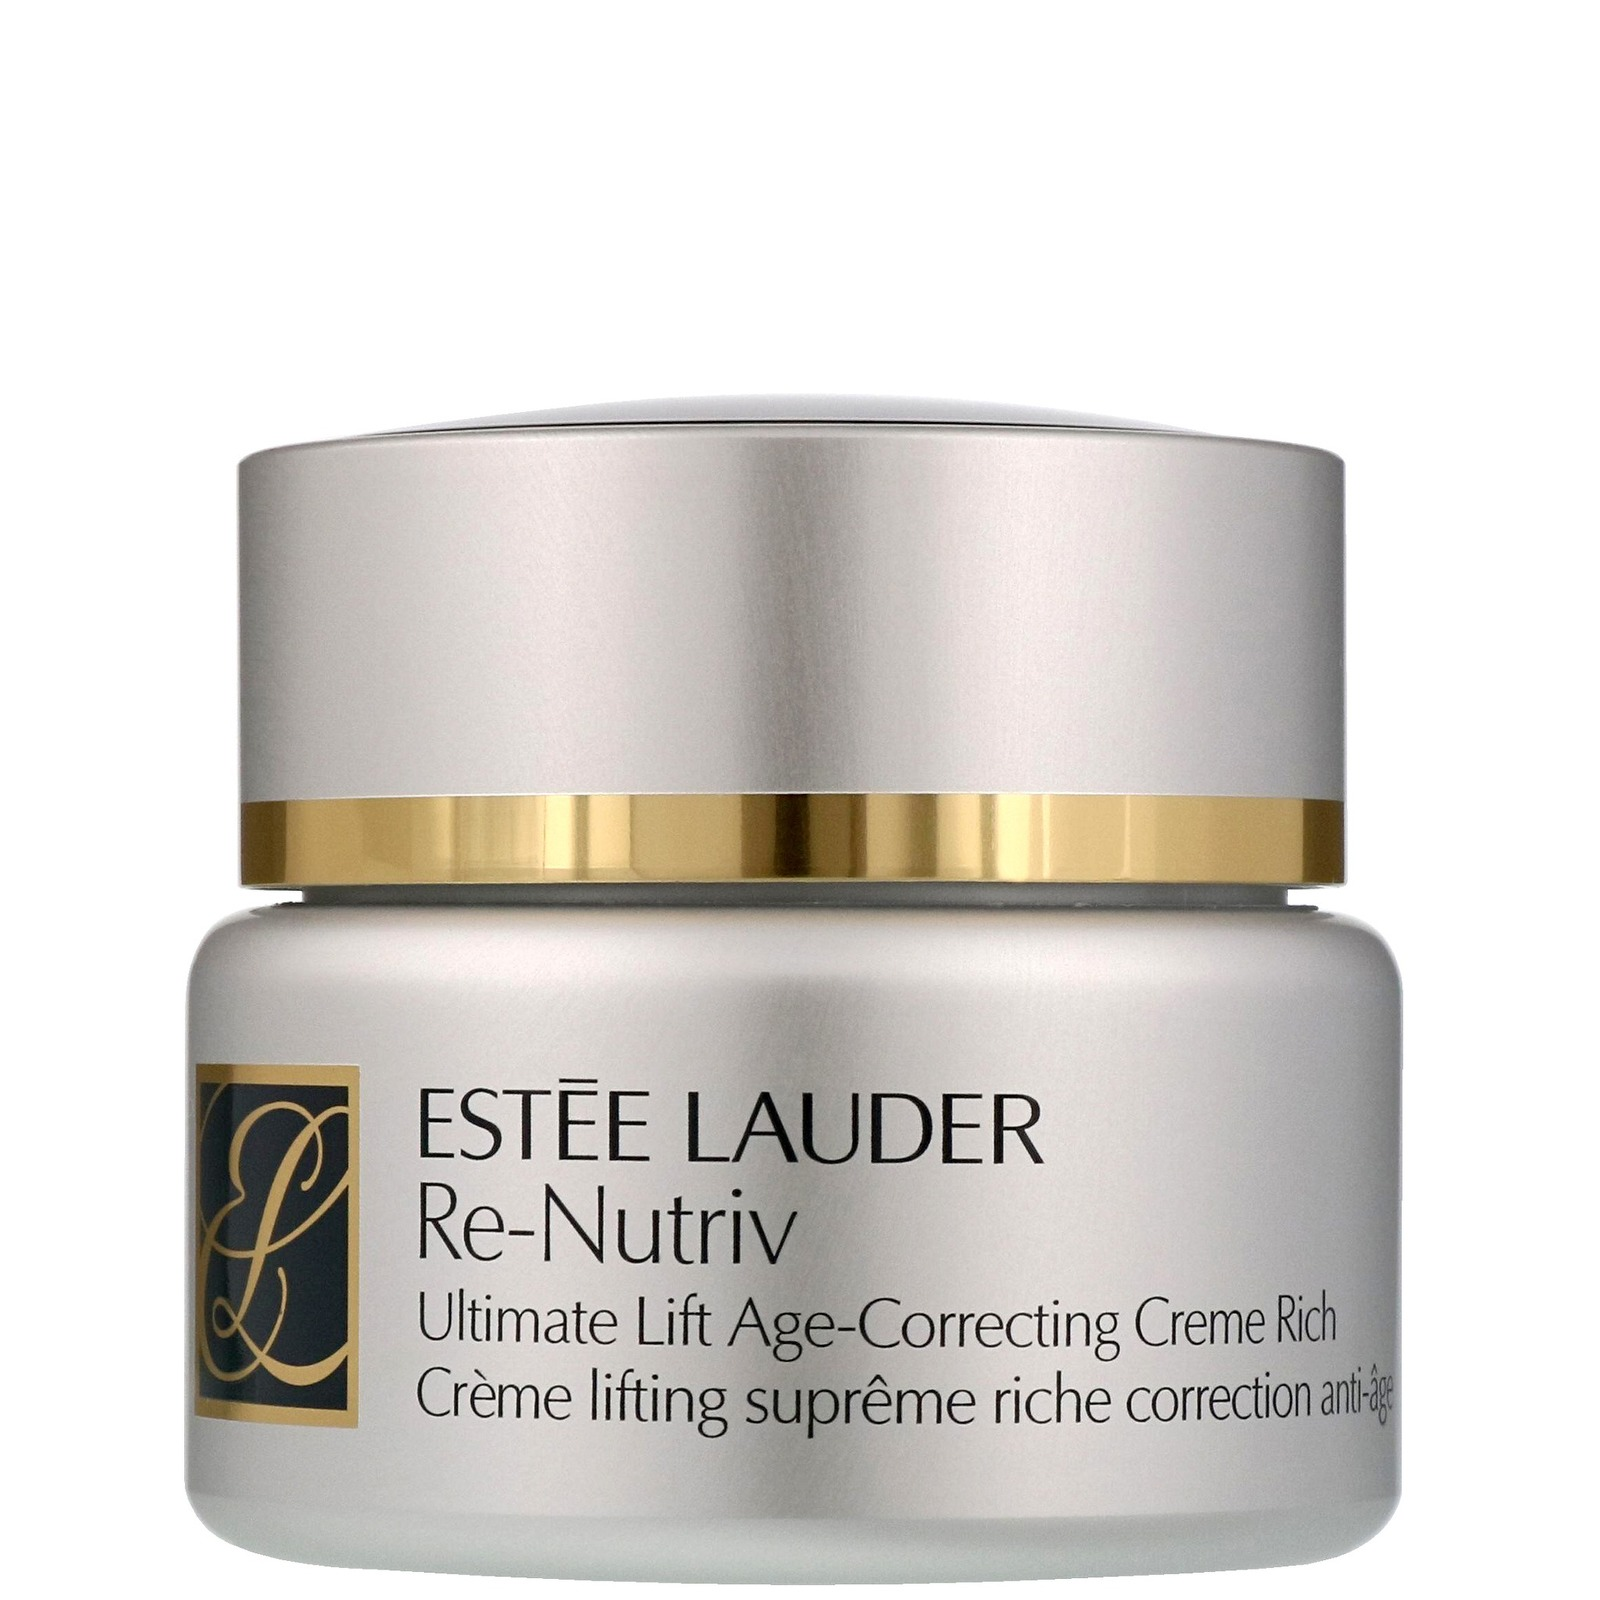 https://media.static-allbeauty.com/image/product/1/1600/1167290-estee-lauder-re-nutriv-ultimate-lift-age-correcting-creme-rich-50ml.jpg